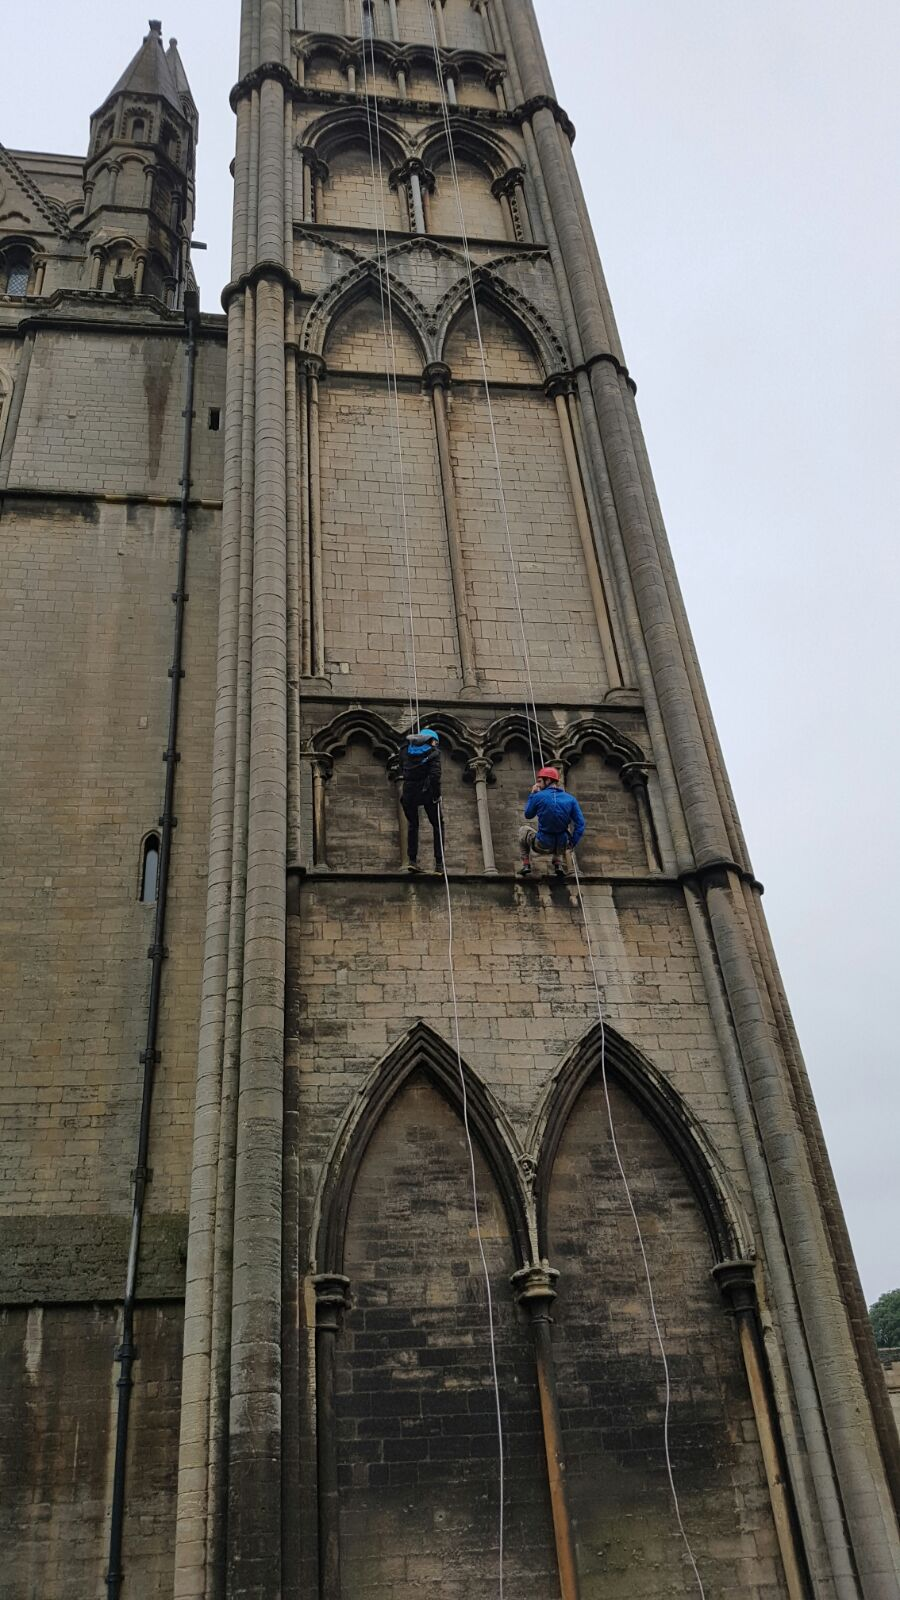 Cathedral abseil for its 900th birthday!